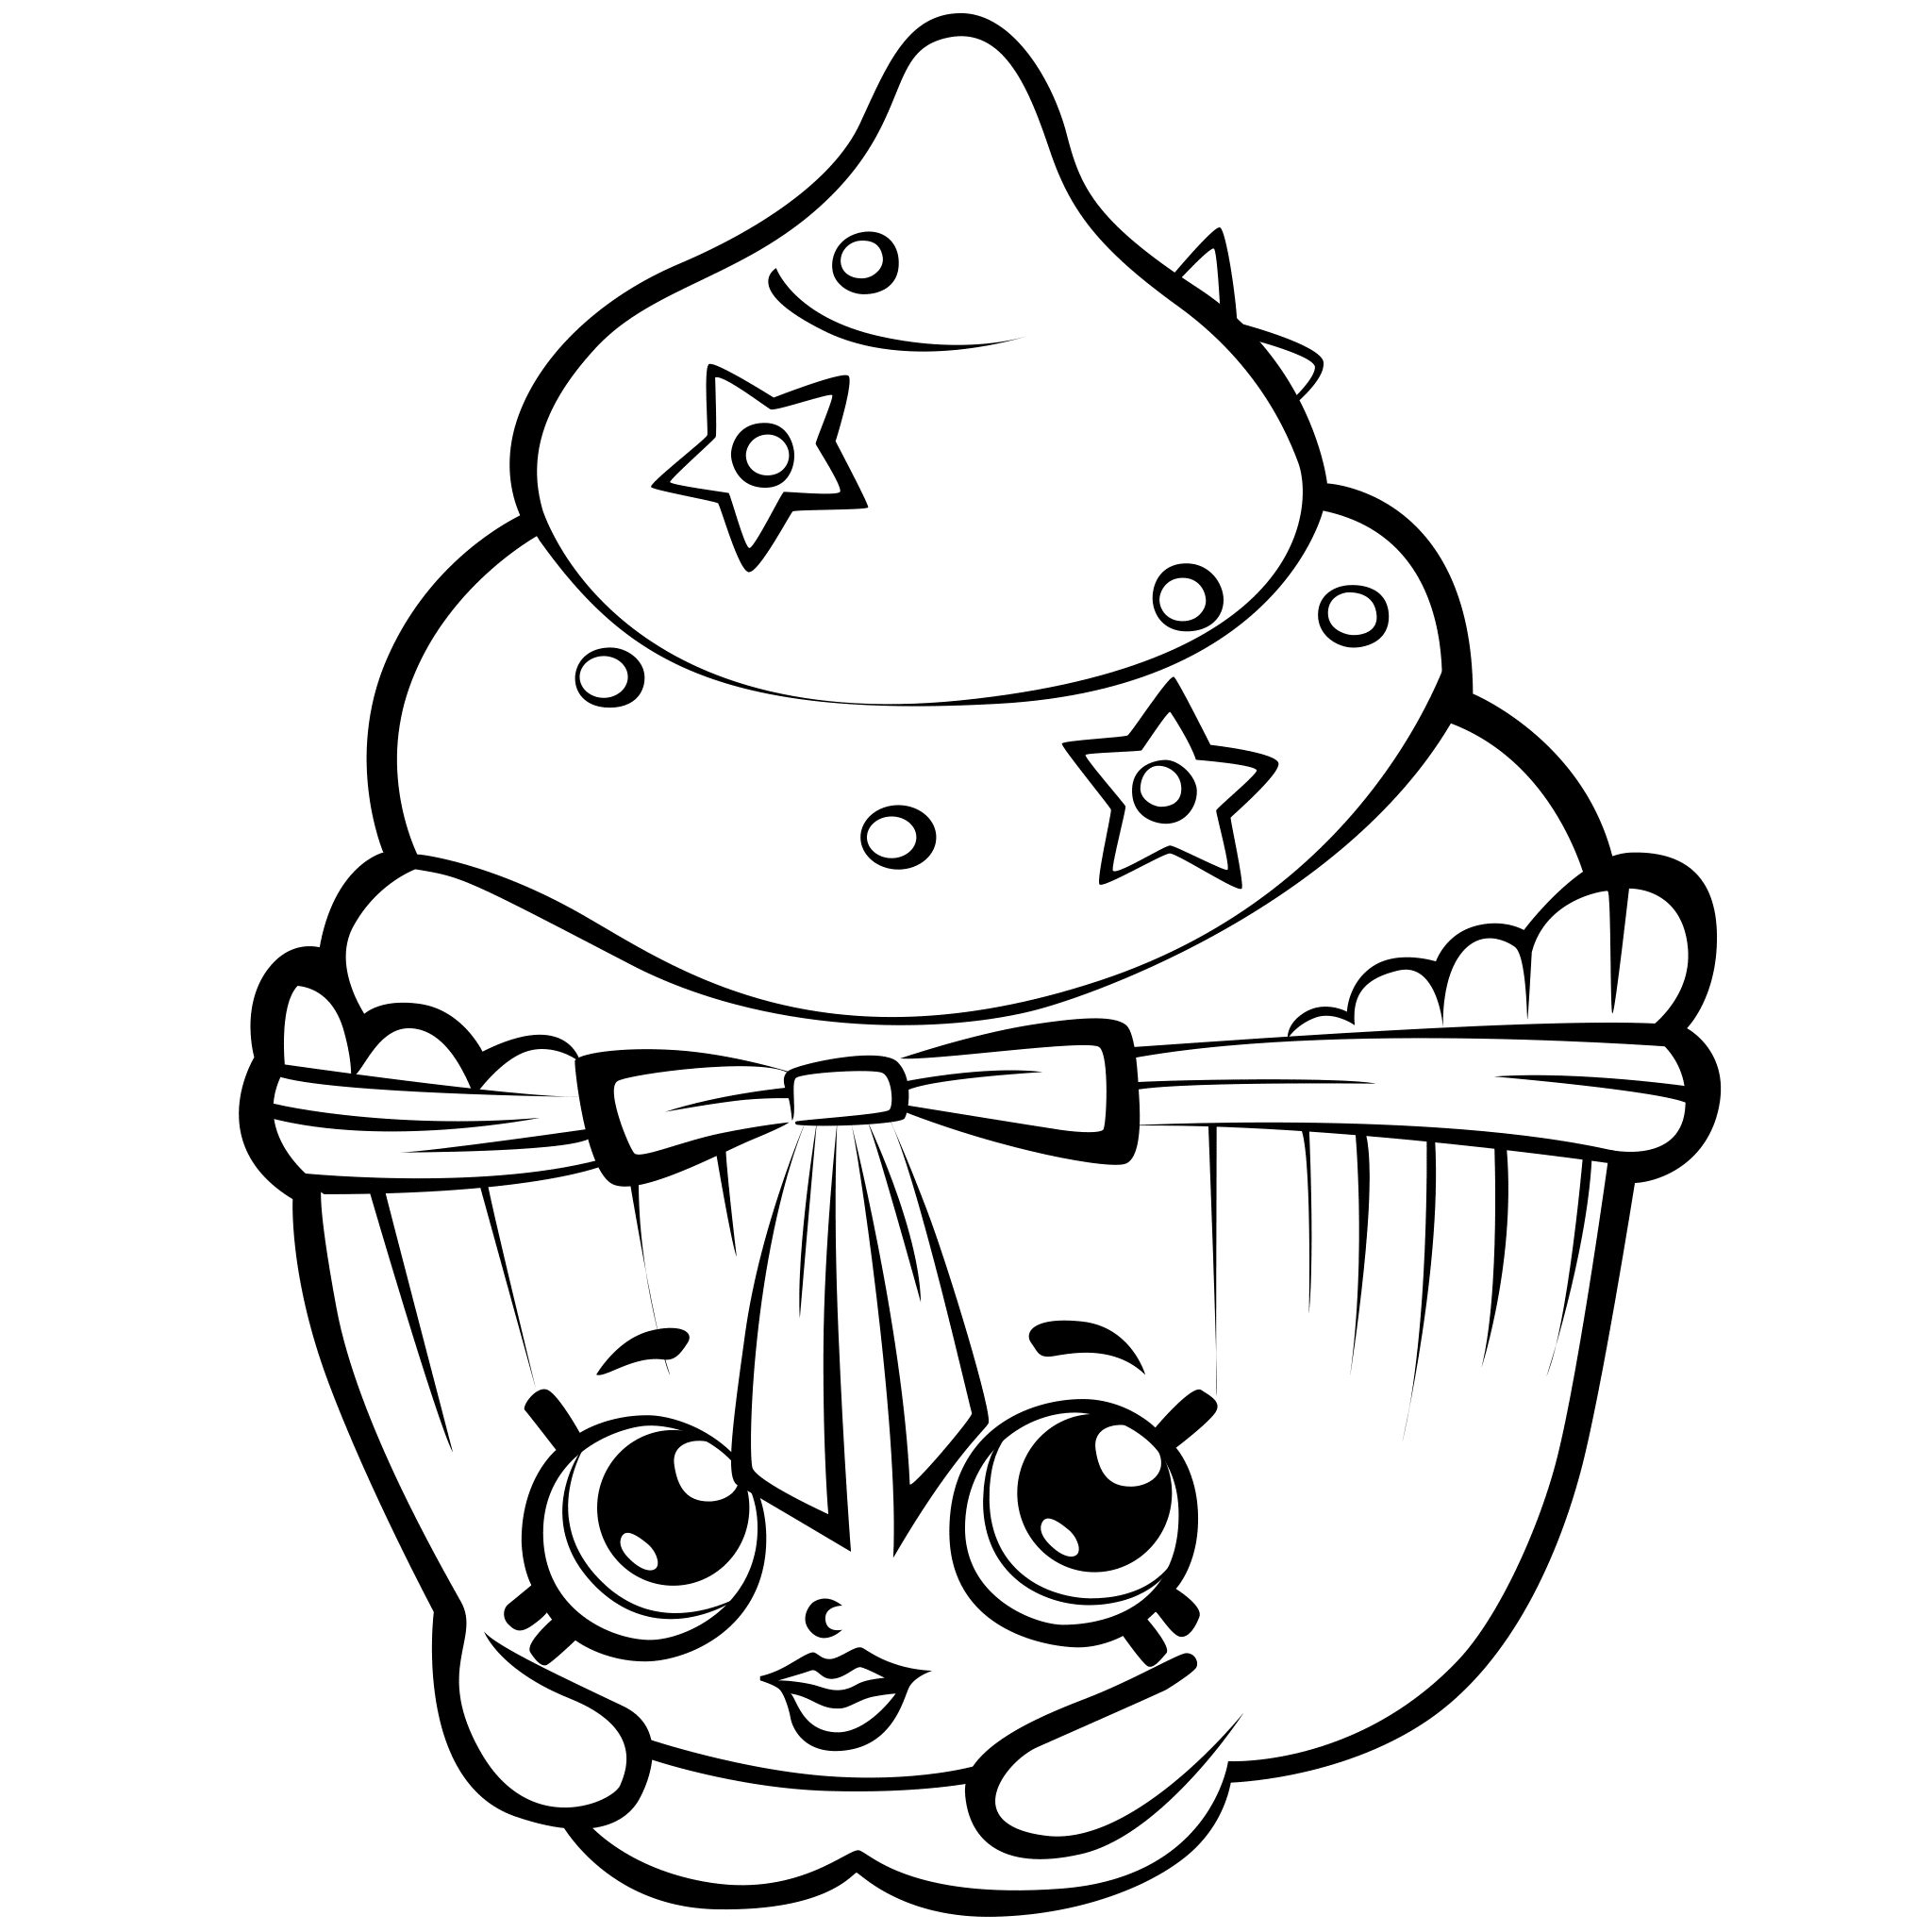 Shopkins Coloring Pages Best Coloring Pages for Kids Printable Of Shopkins Coloring Pages 71 Collection